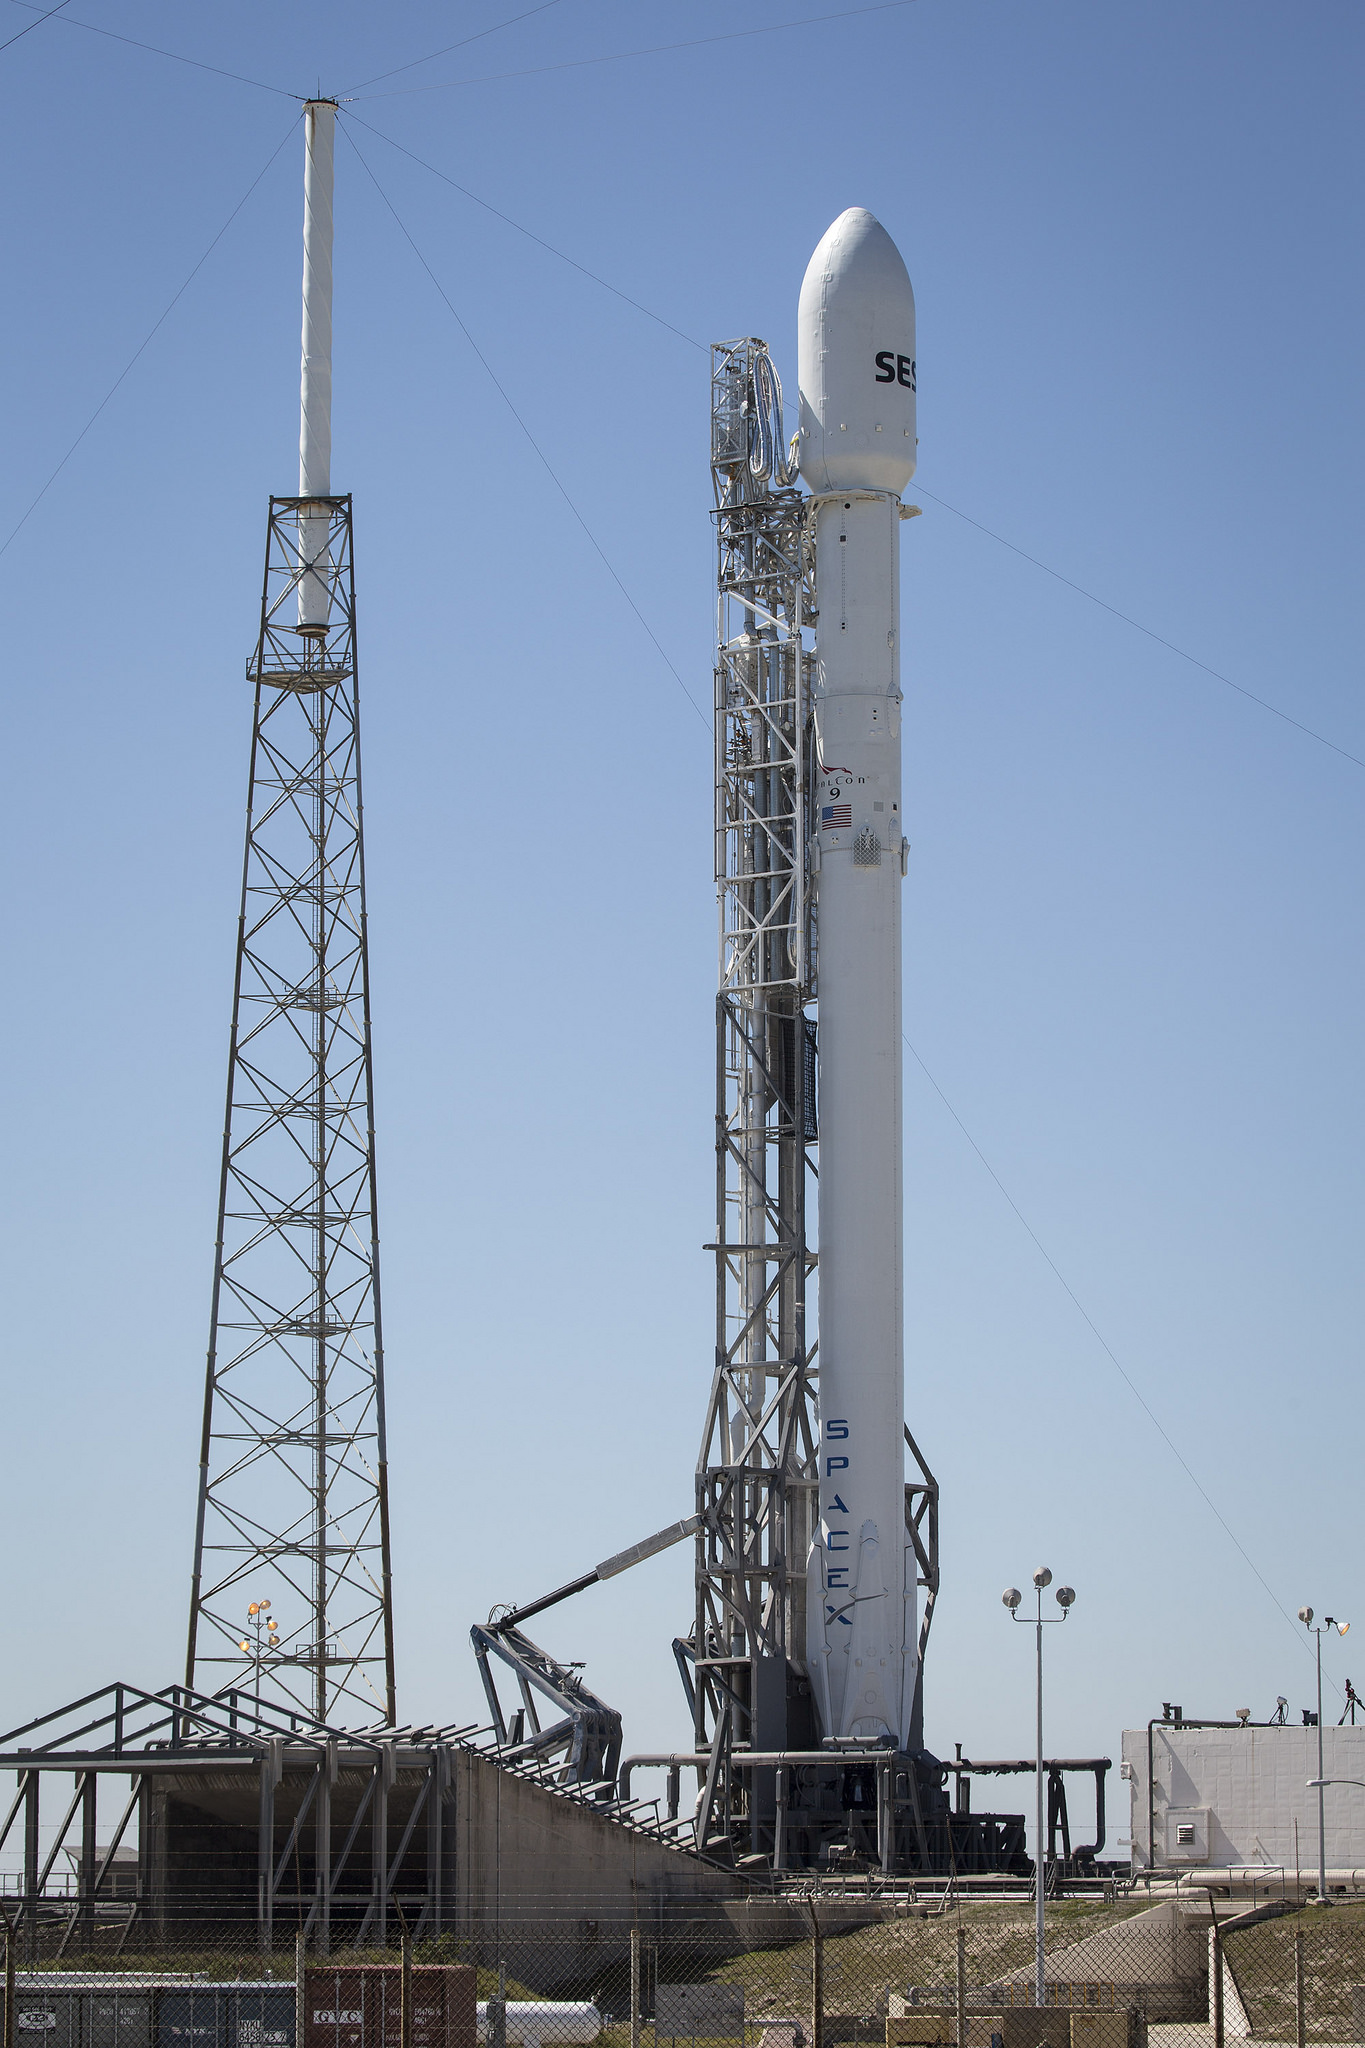 Falcon 9 Rocket Ready for Launch